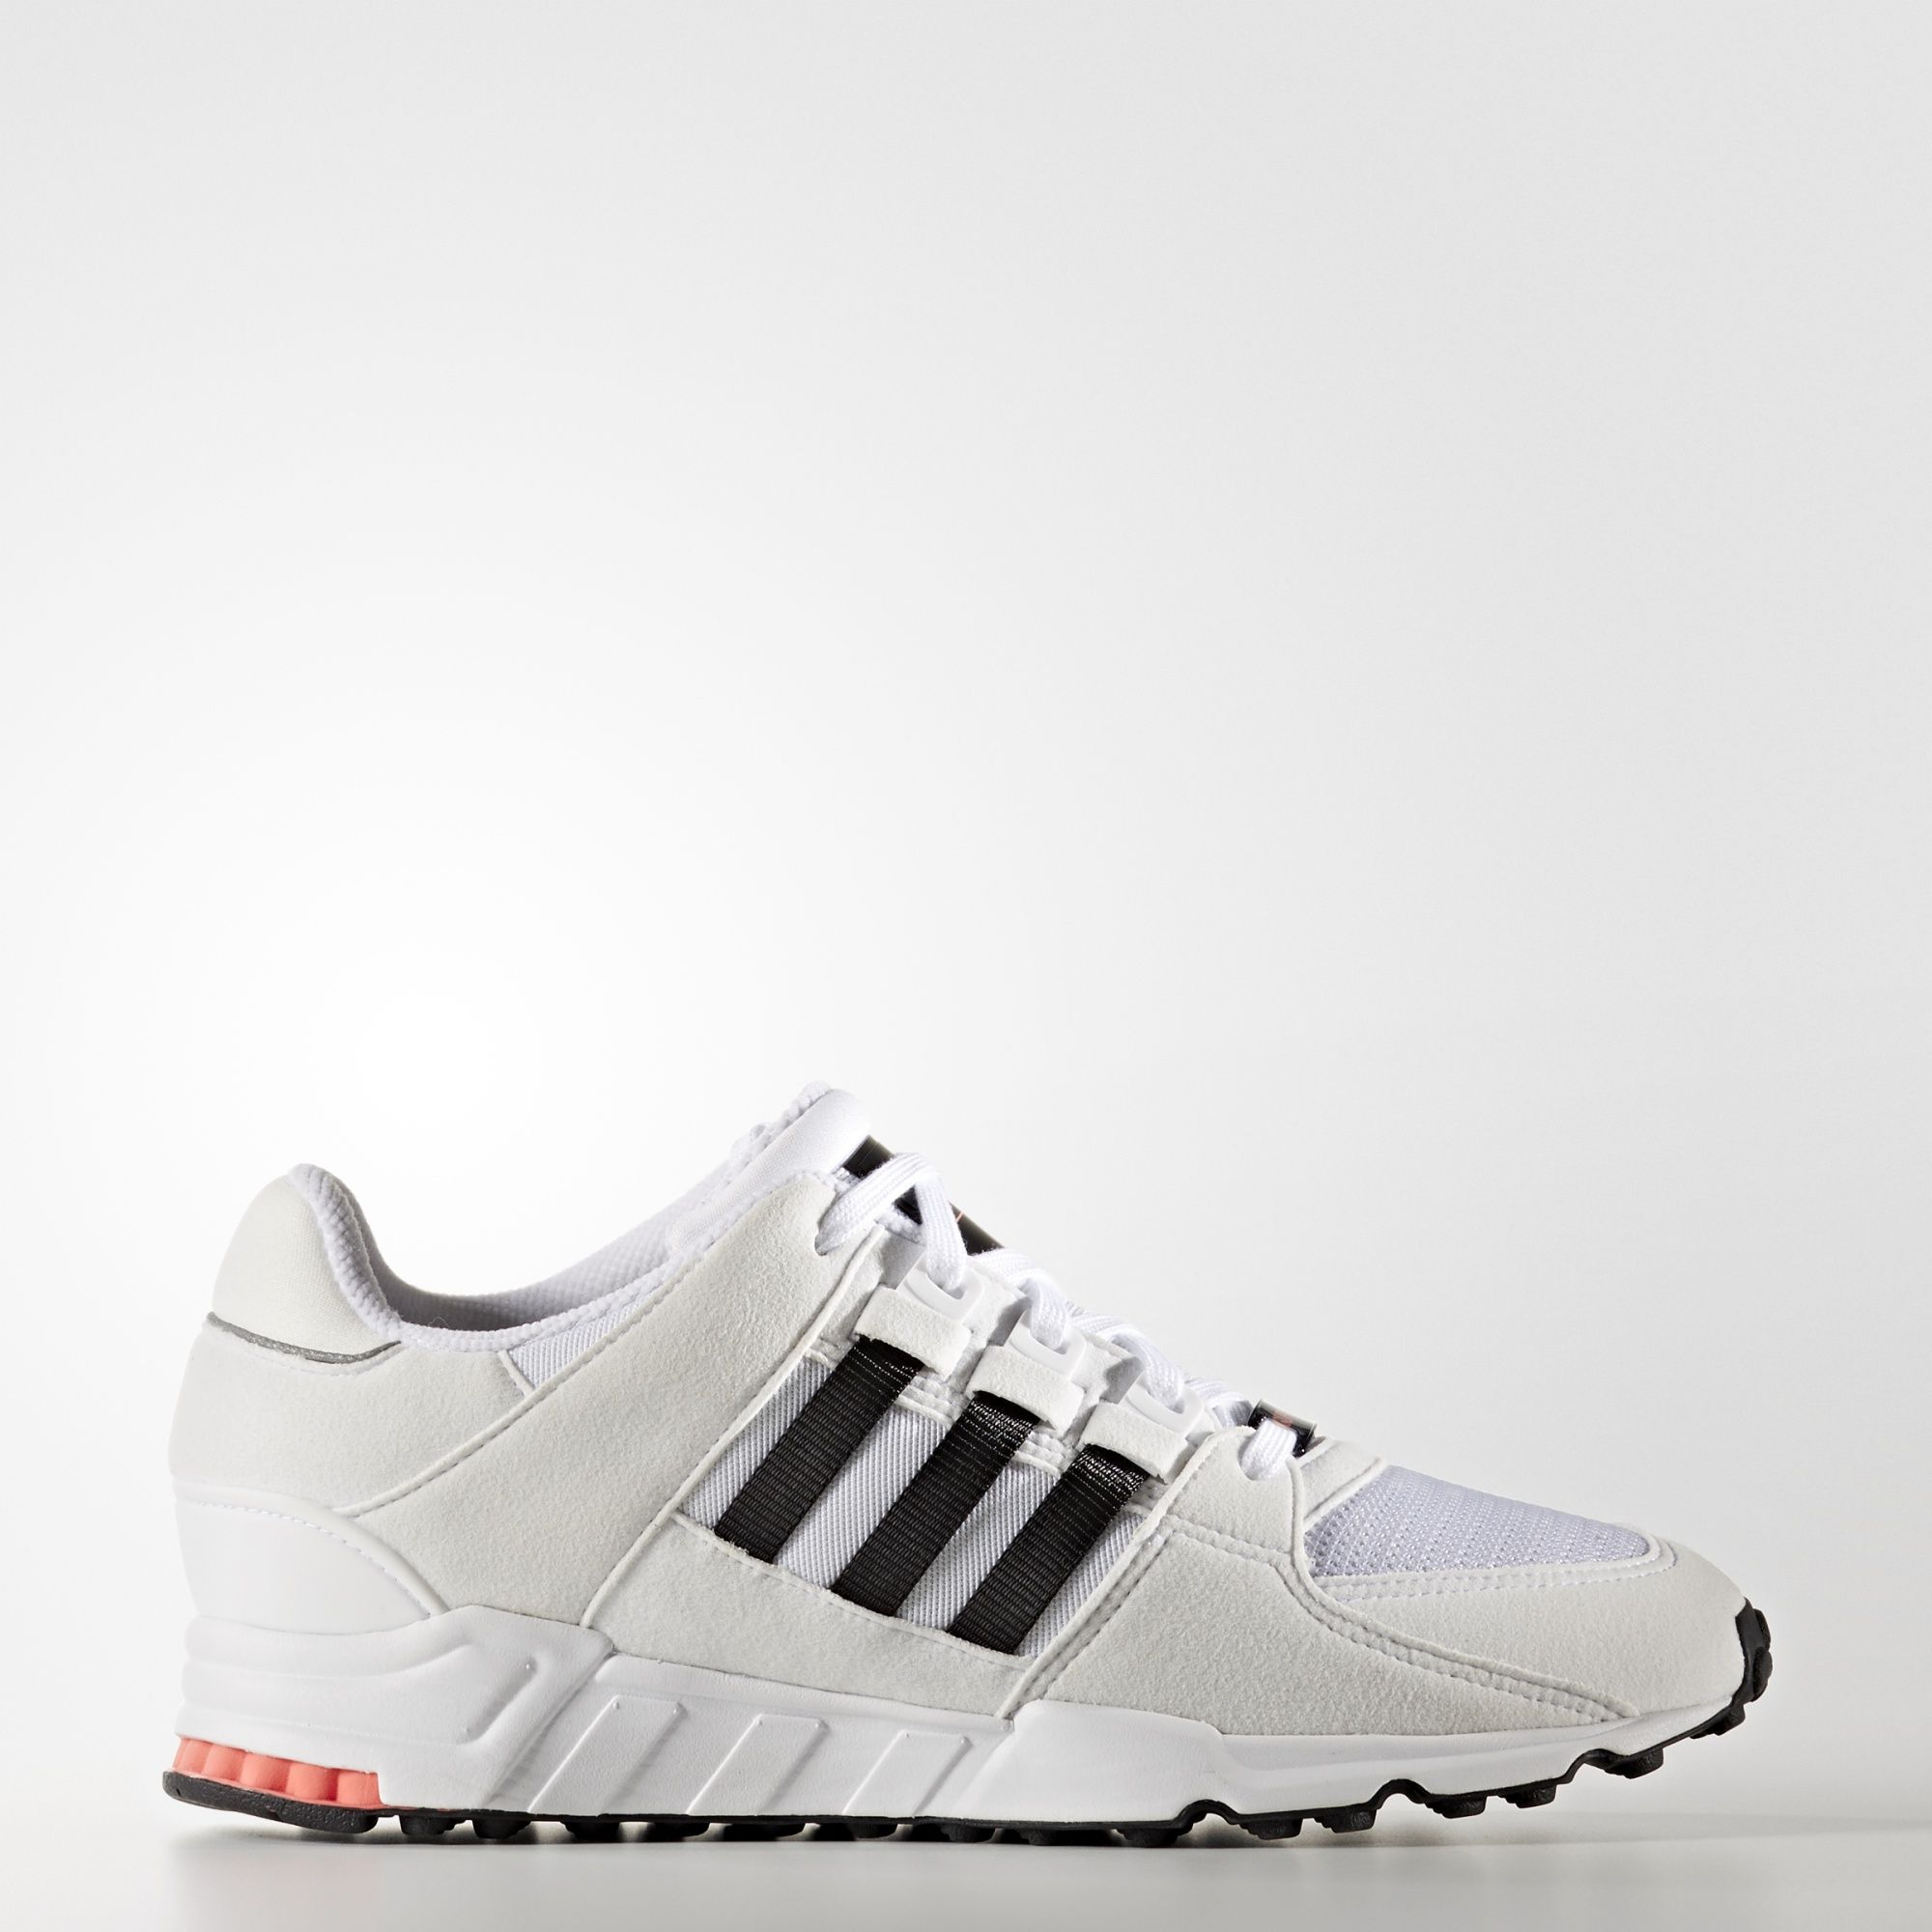 adidas - EQT Support ADV Schoenen | Nice kicks | Pinterest | Eqt support  adv, Adidas and Bb